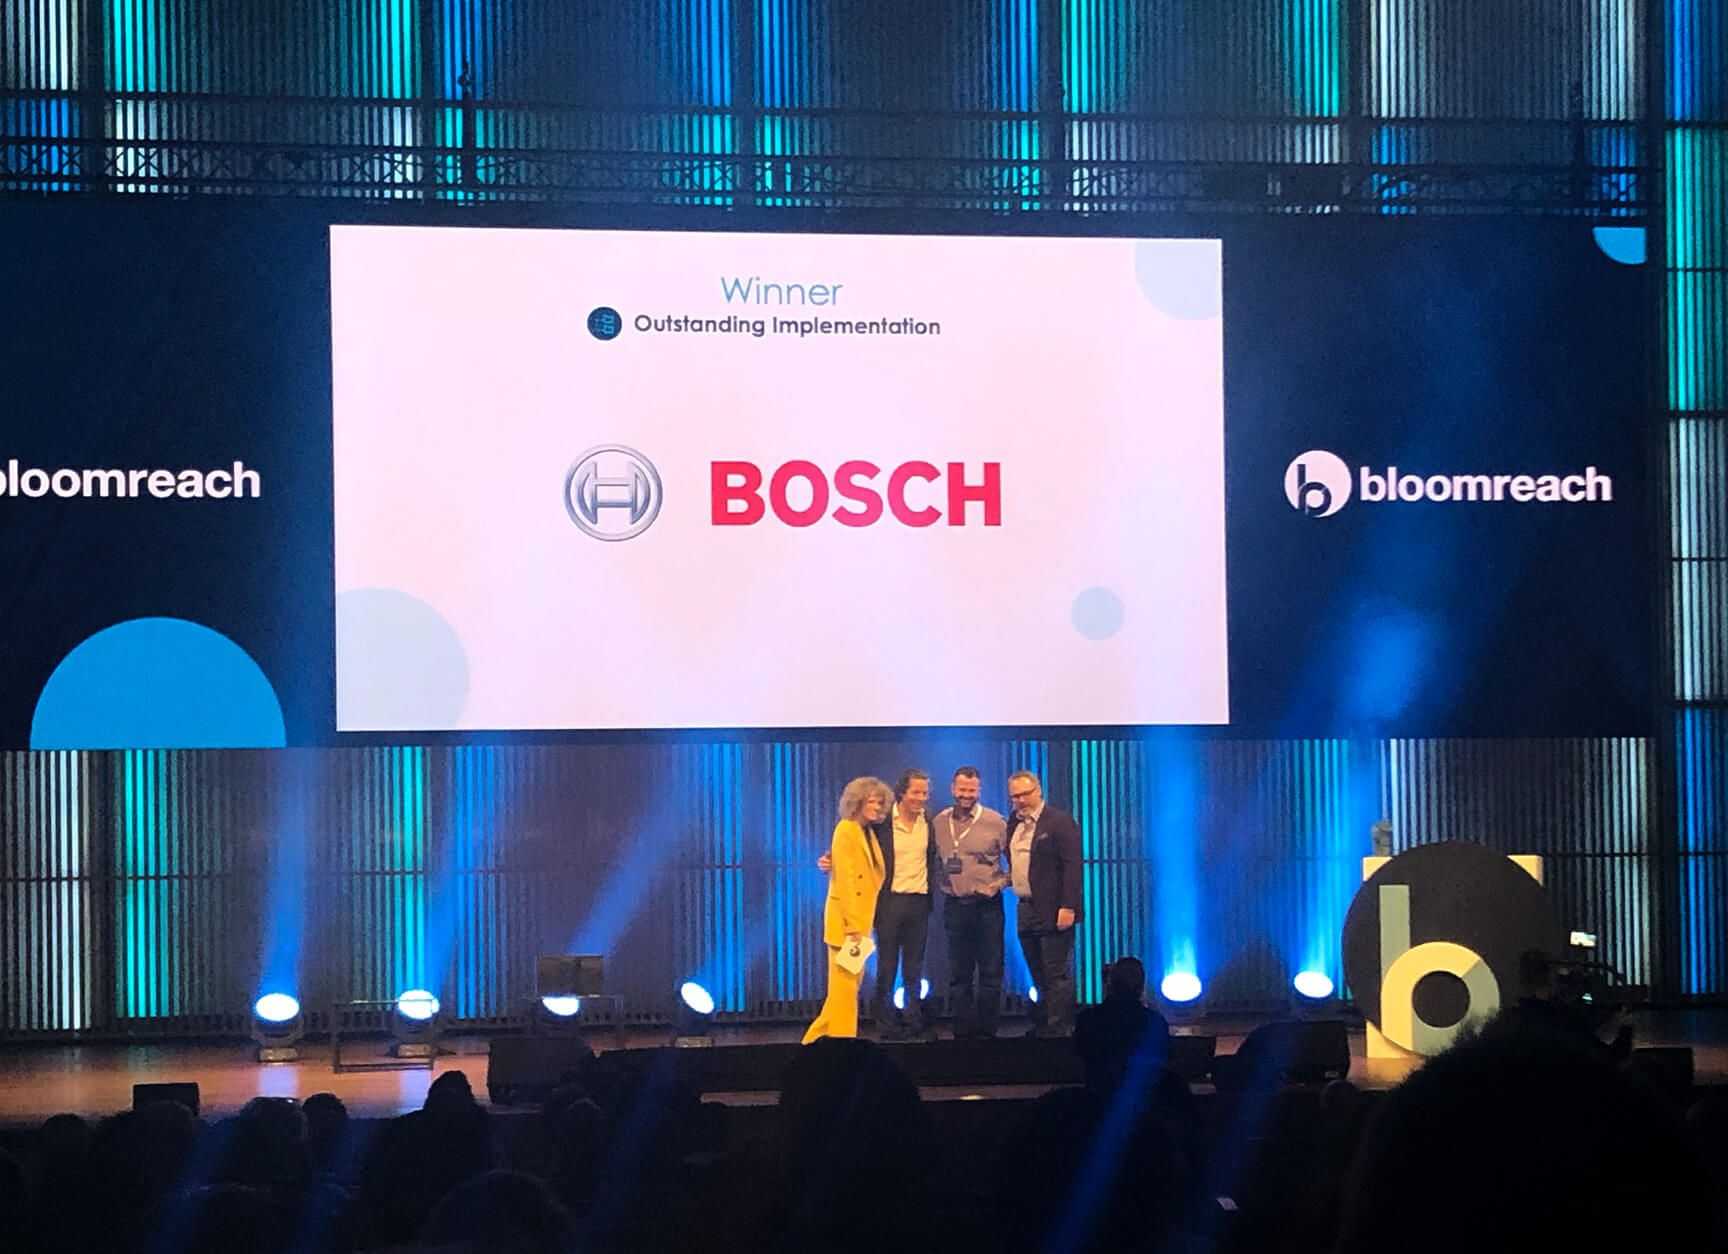 diva-e participates in Bloomreach Connect as largest partner in the DACH region